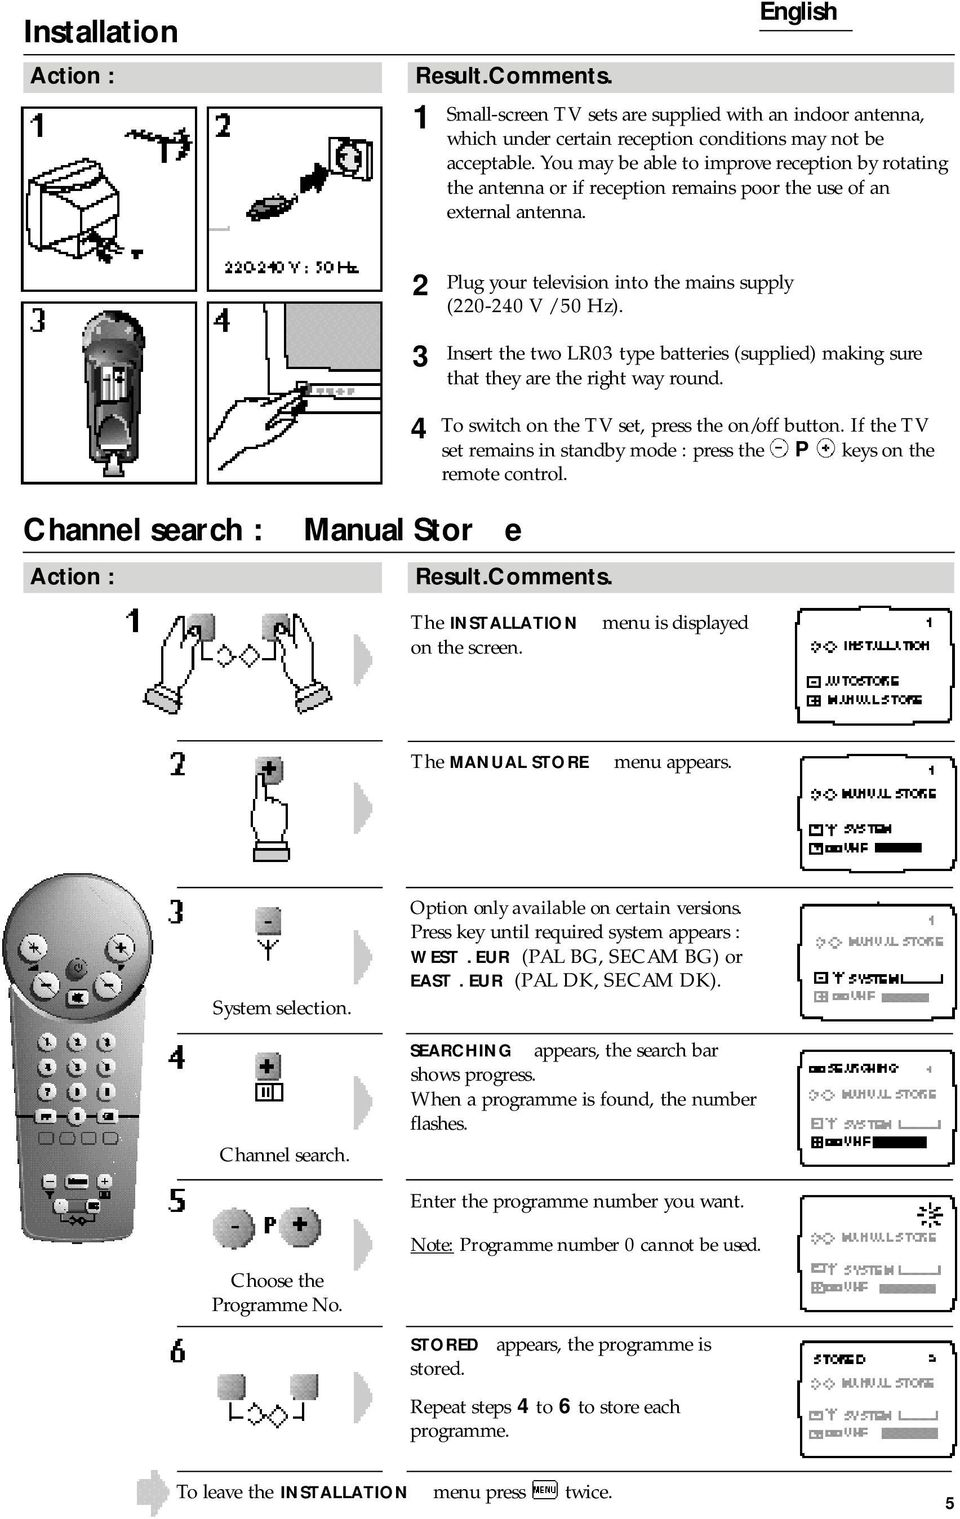 Channel search : Manual Stor e Action : Plug your television into the mains supply (0-0 V / 0 Hz). Insert the two LR0 type batteries (supplied) making sure that they are the right way round.